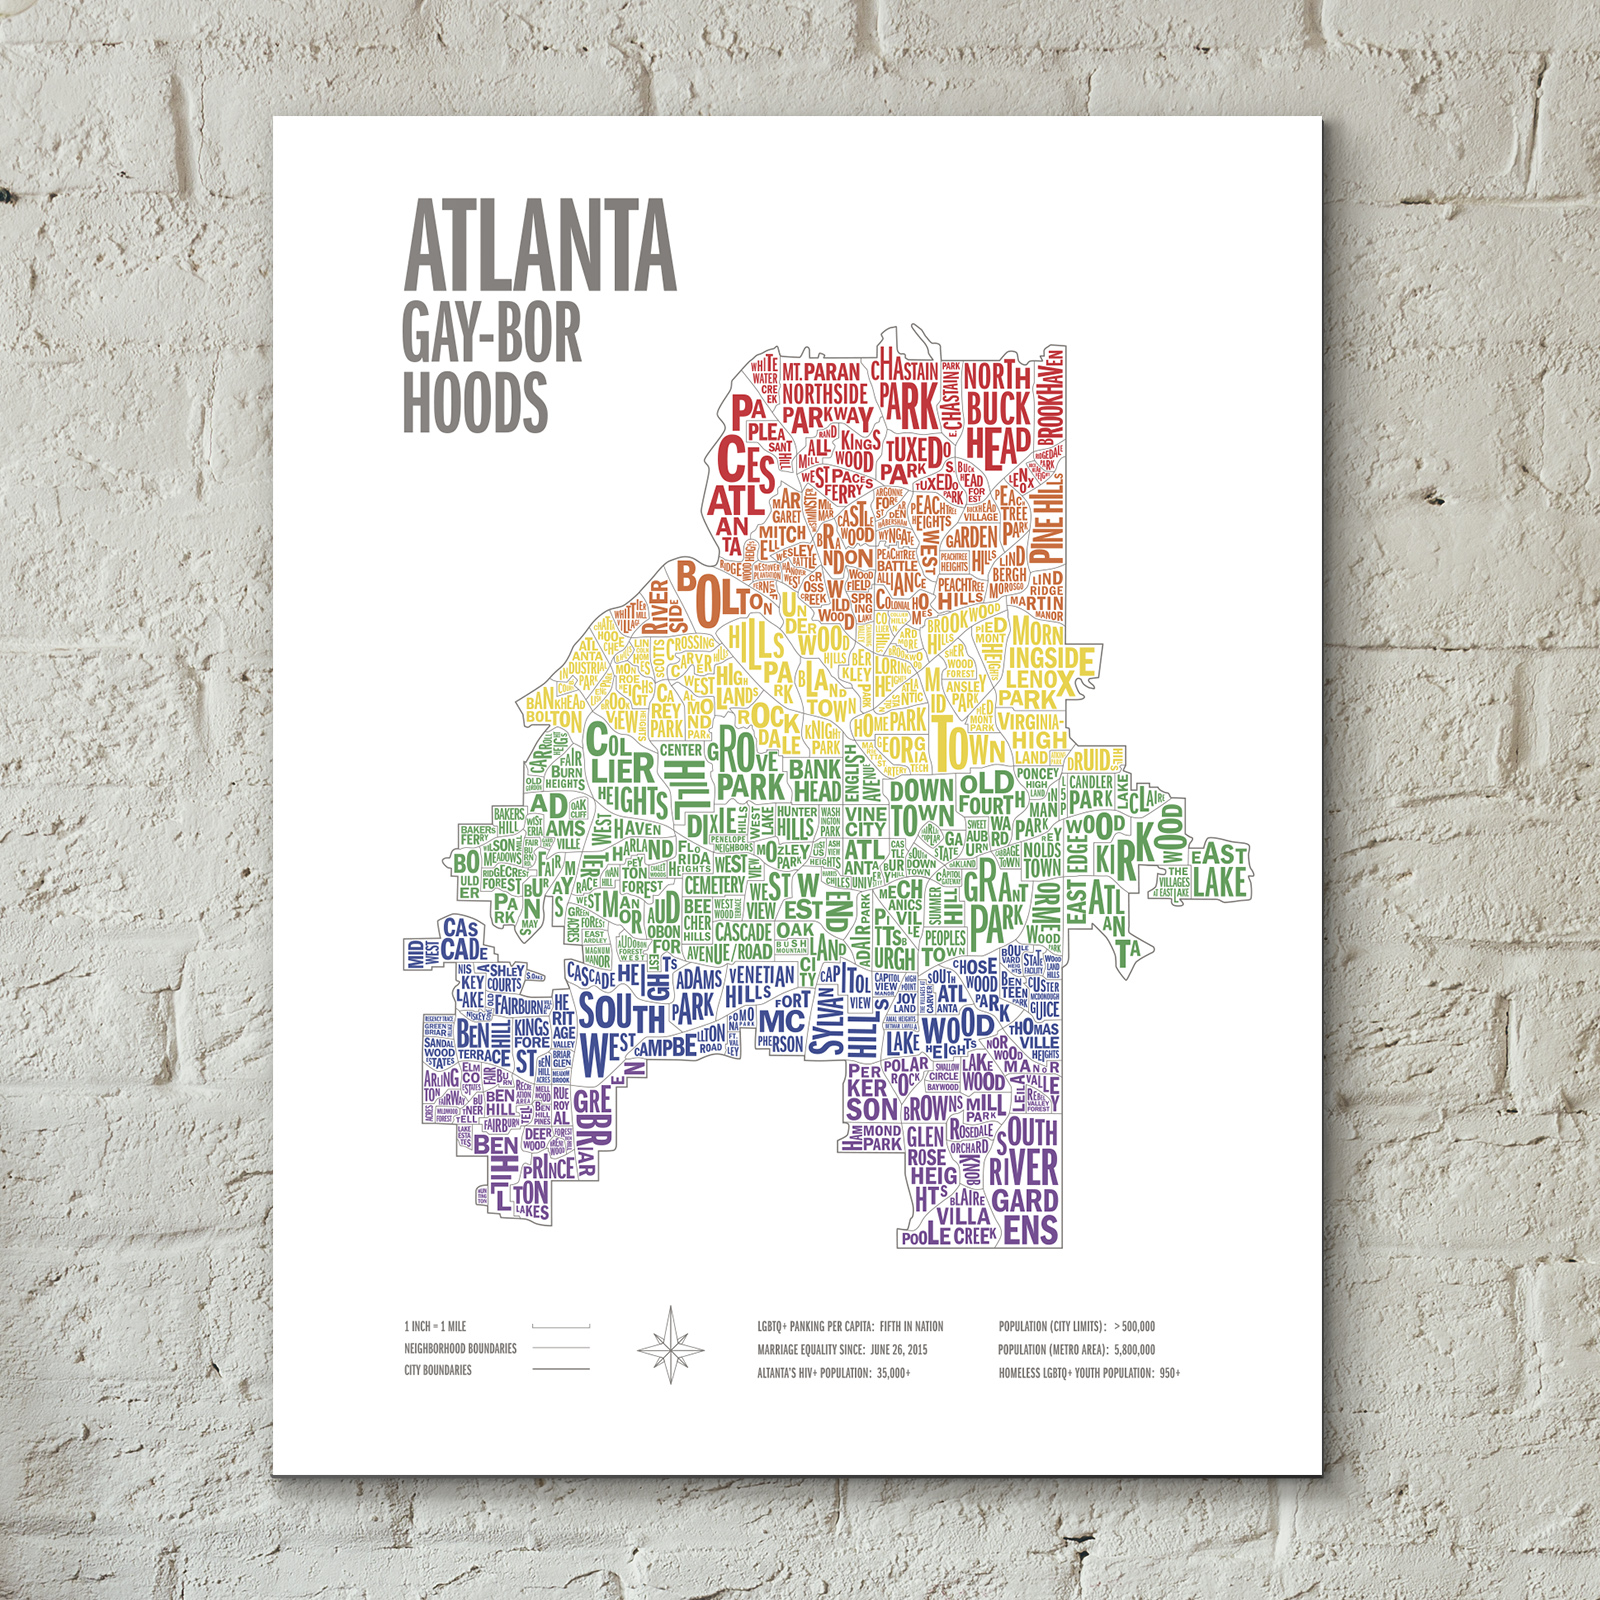 Atlanta Gayborhoods Screen Prints -